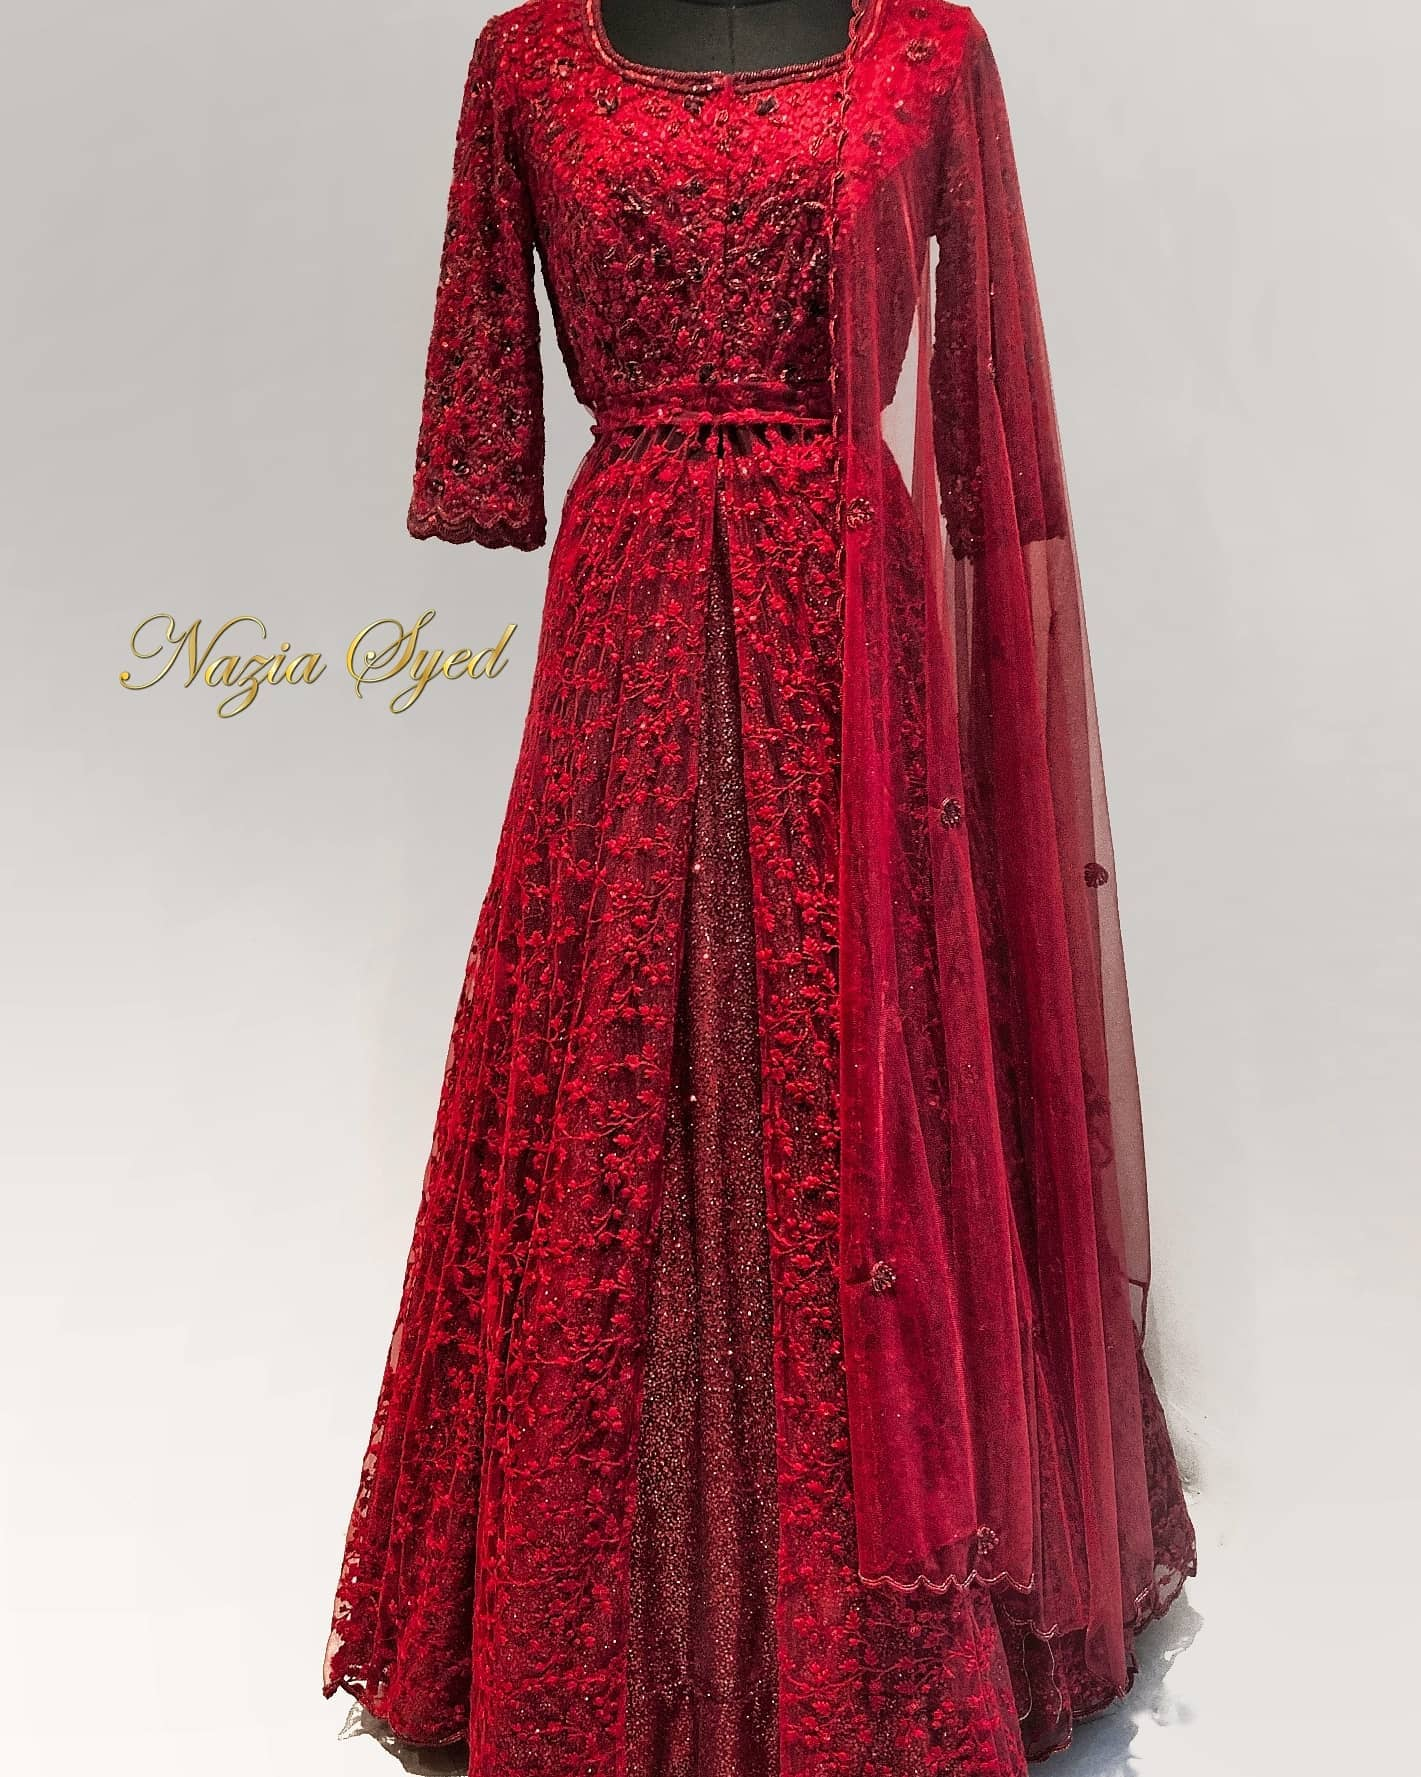 There is a shade of red for every woman .. Customised bridal options from Nazia syed.  | green frock suit | anarkali lehenga | long anarkali dress | 2020-12-09